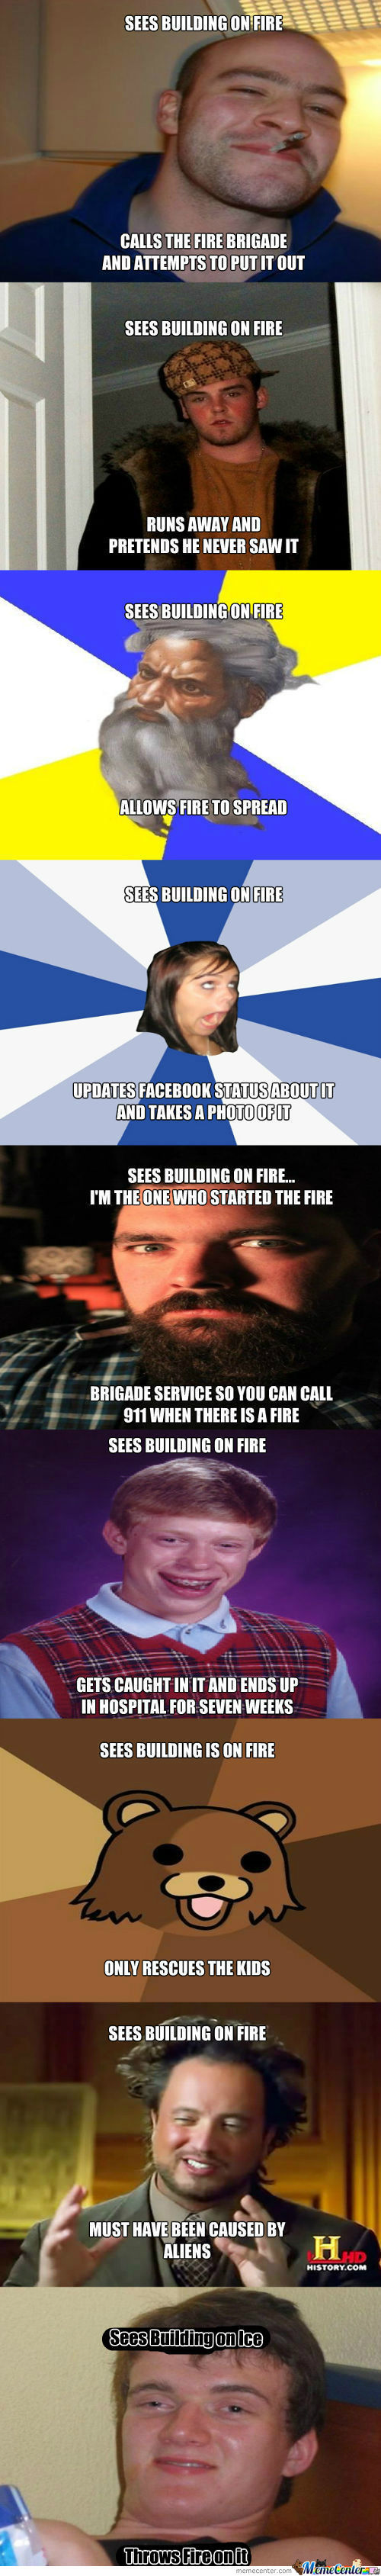 [RMX] When Buildings Set On Fire